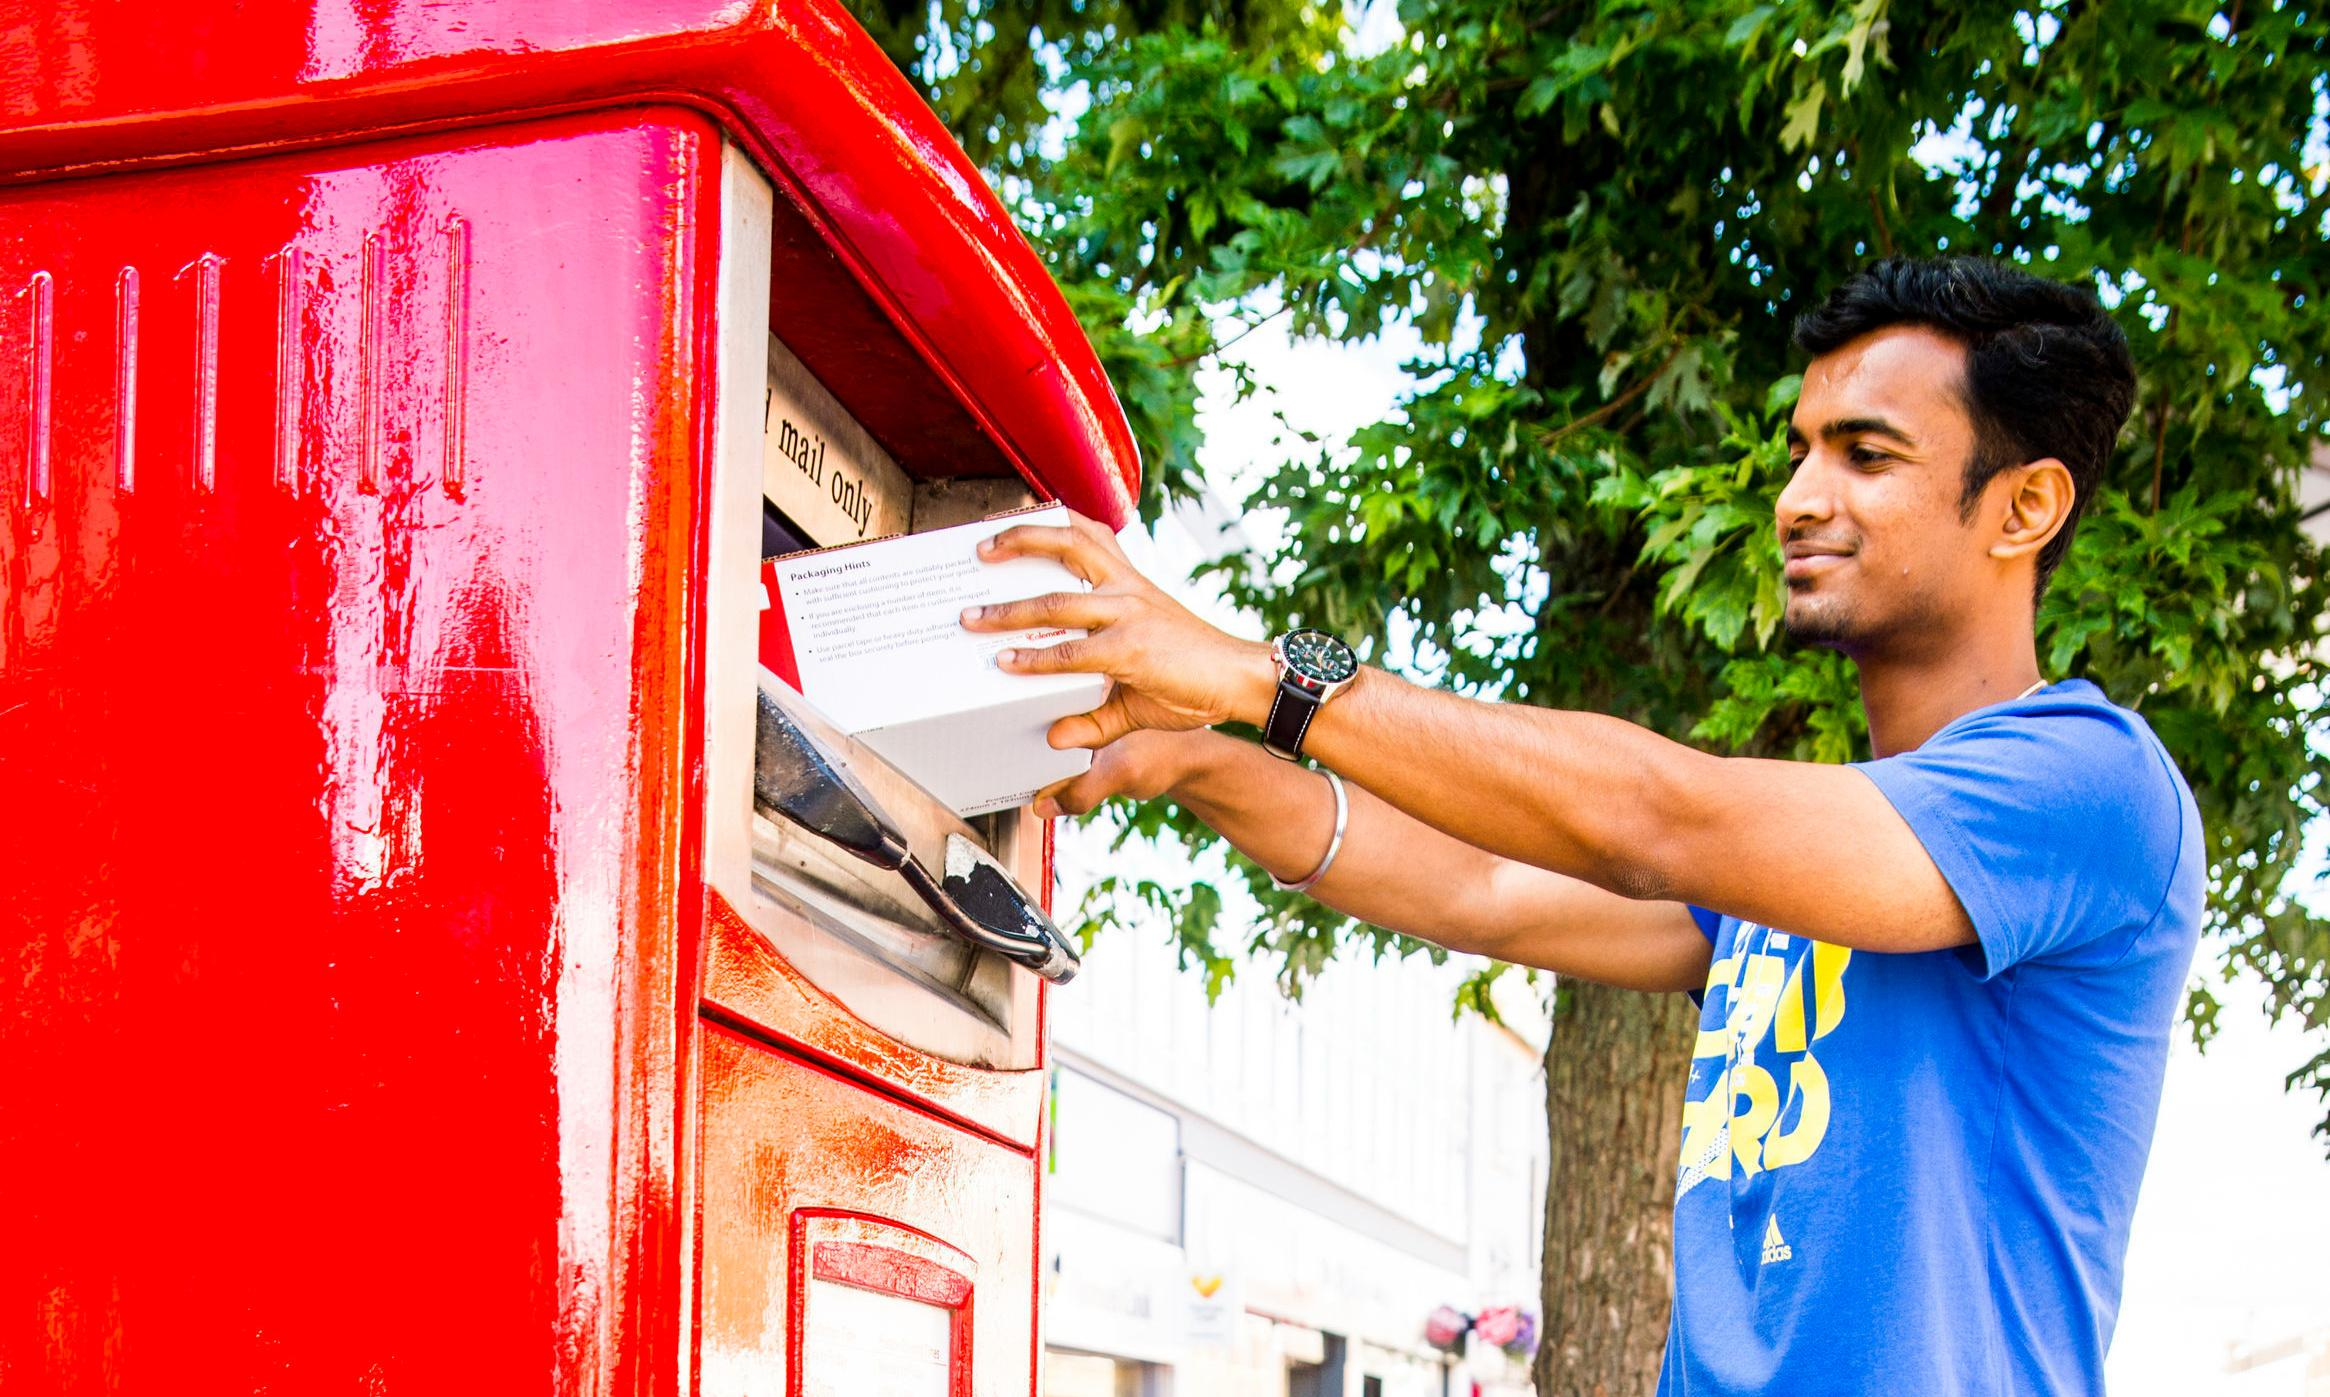 Royal Mail to launch UK's first parcel postboxes